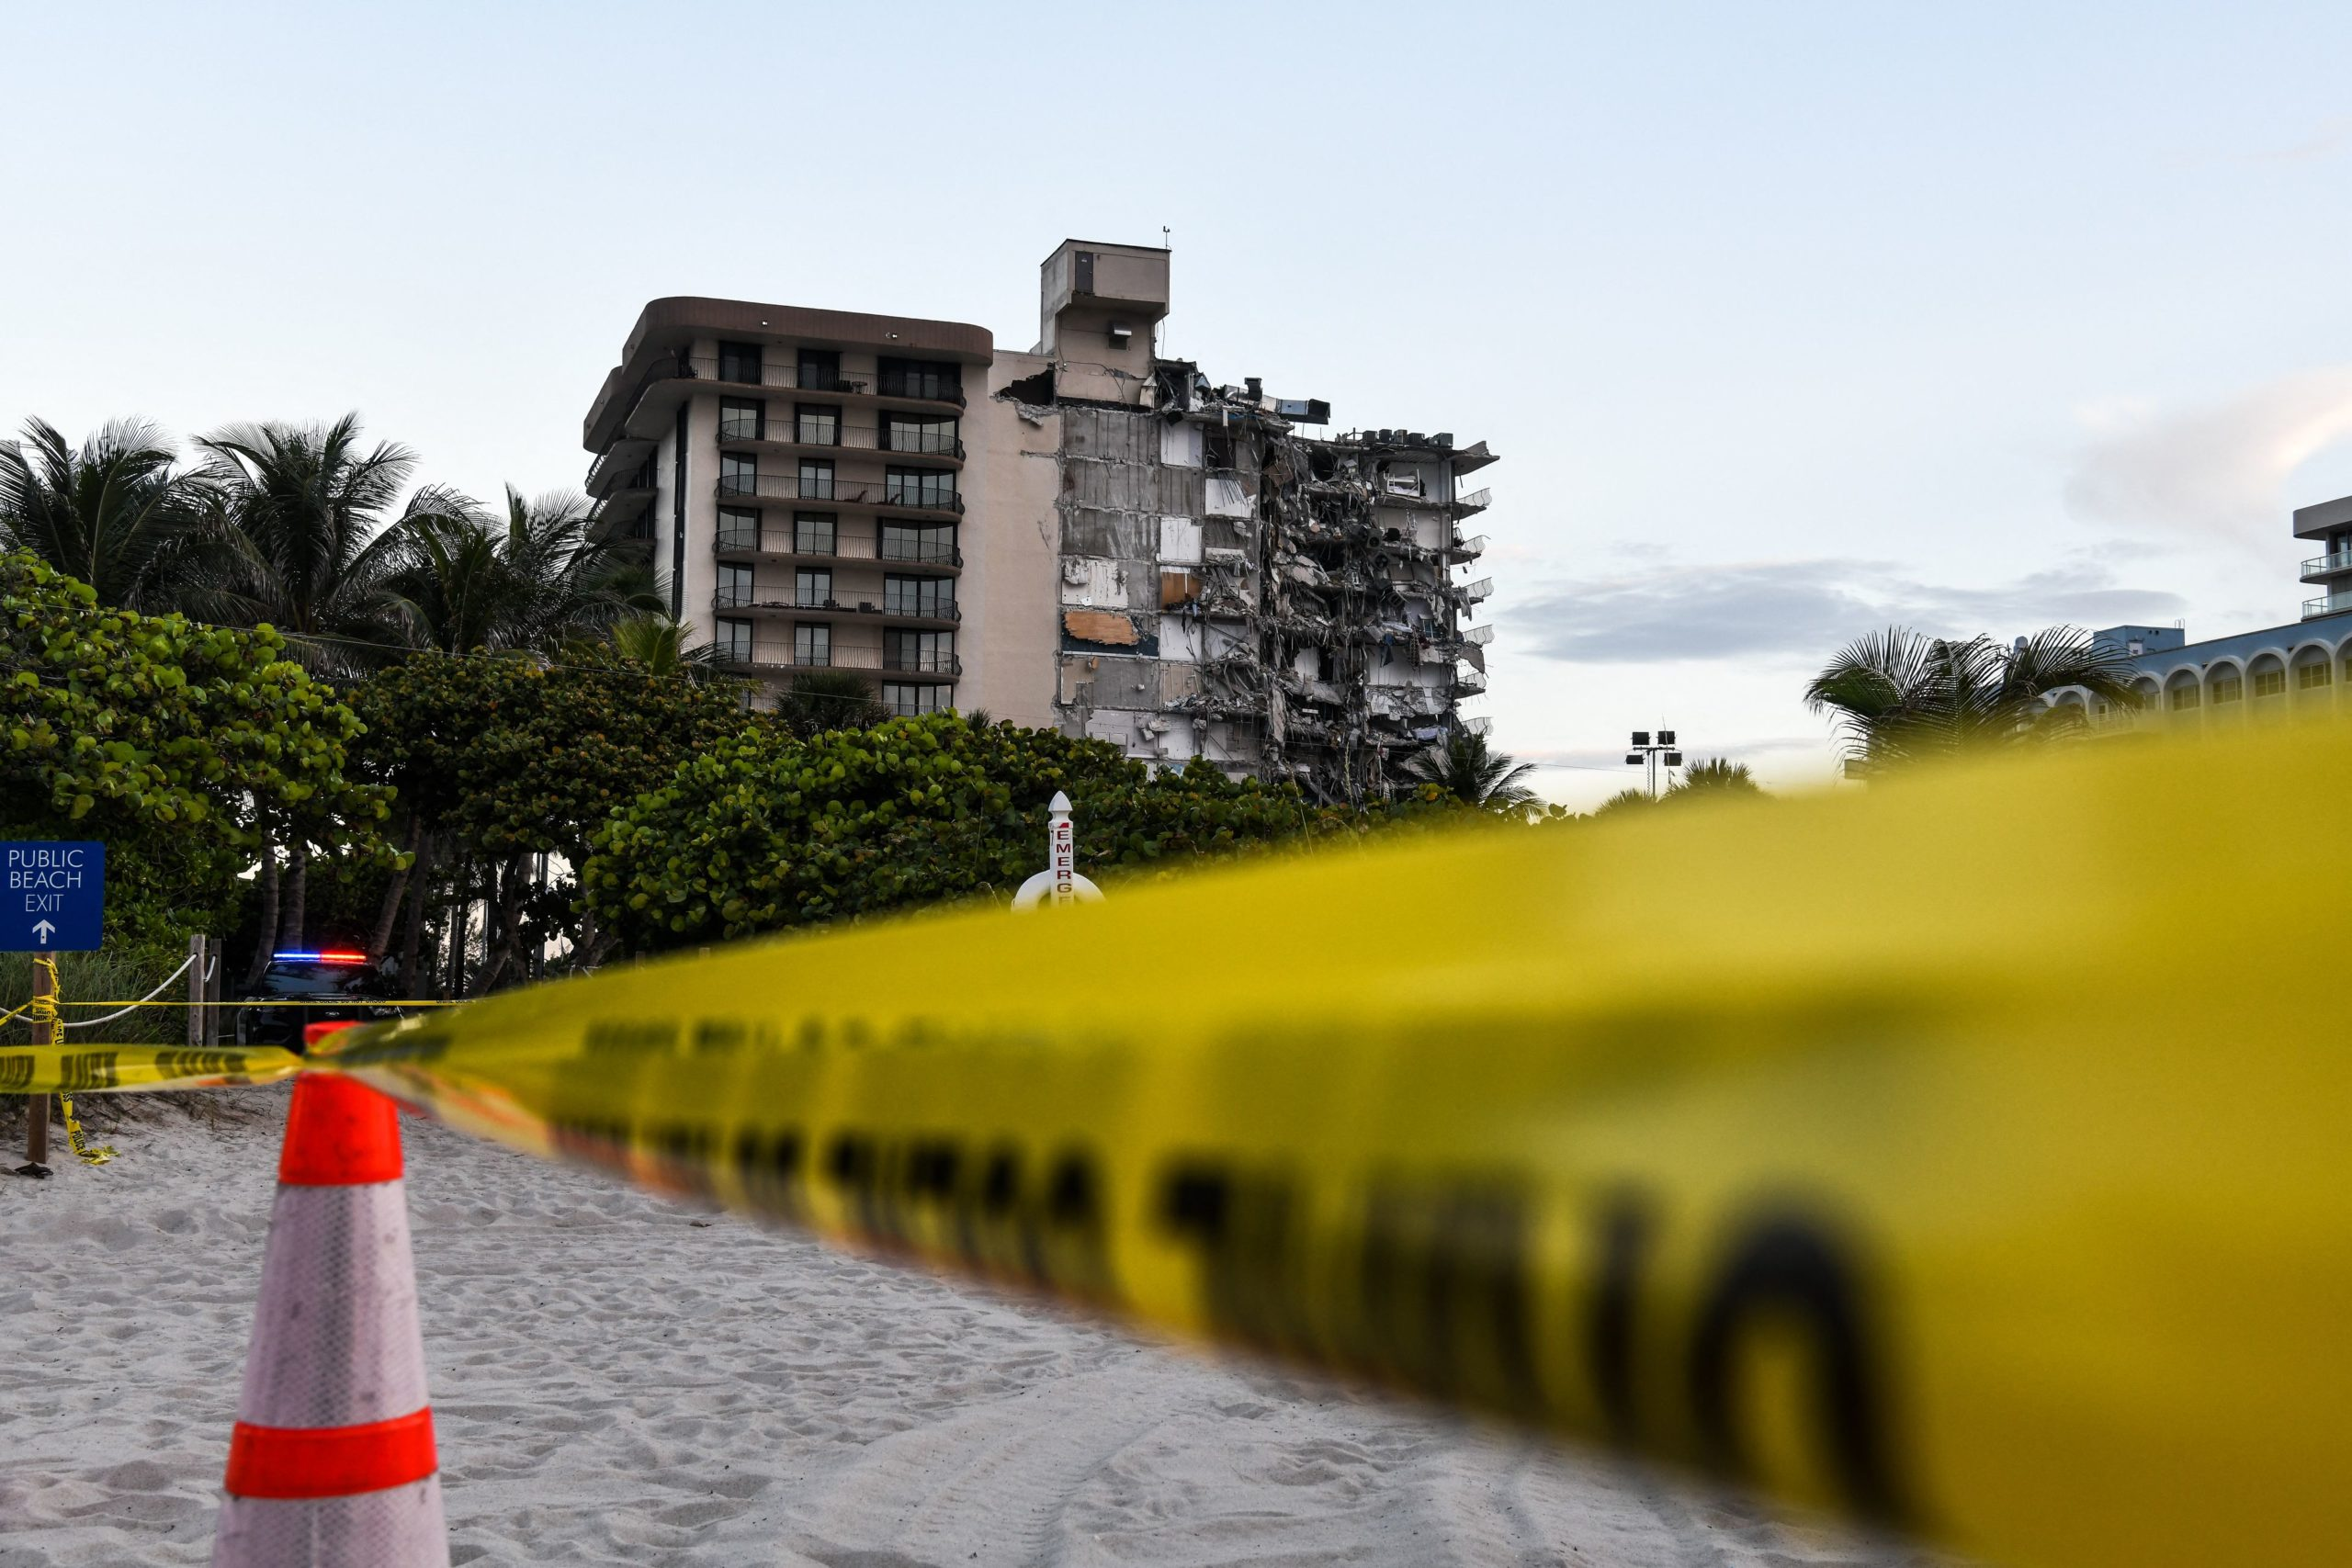 Police tape blocks access to a partially collapsed building in Surfside north of Miami Beach, on June 24, 2021. (Photo by CHANDAN KHANNA/AFP via Getty Images)